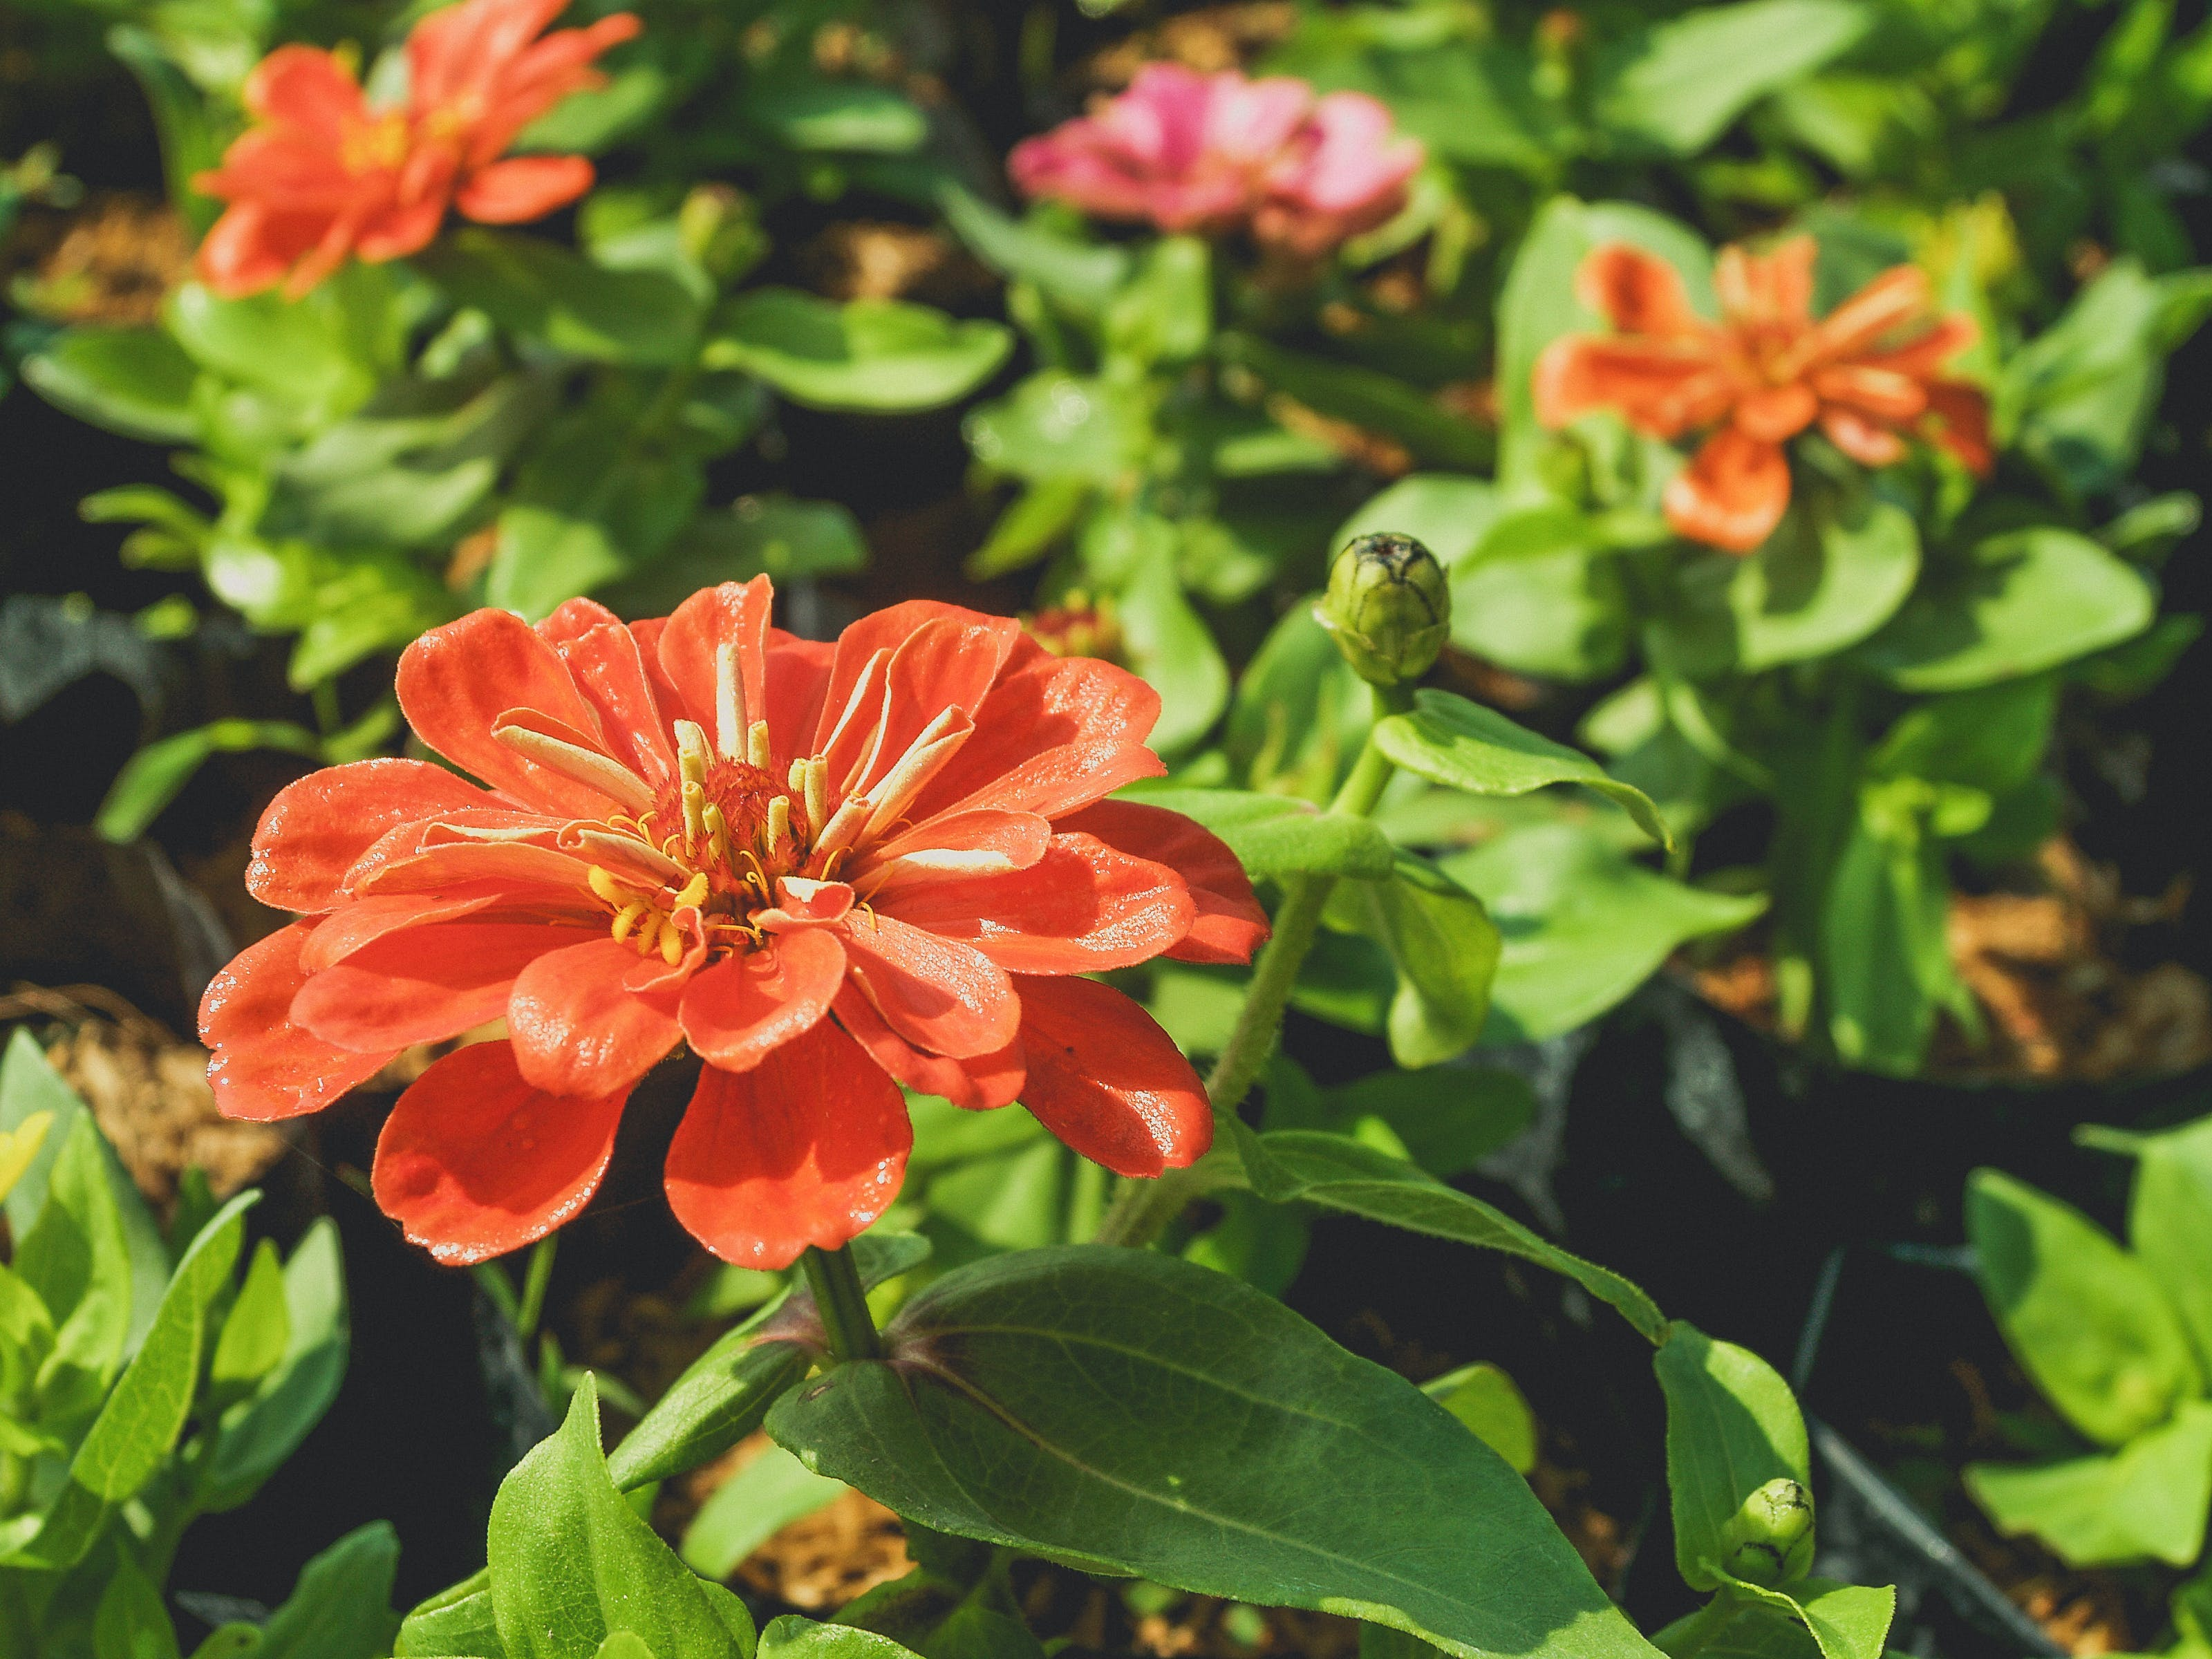 Selective Focus Photo Of Orange Petaled Flower